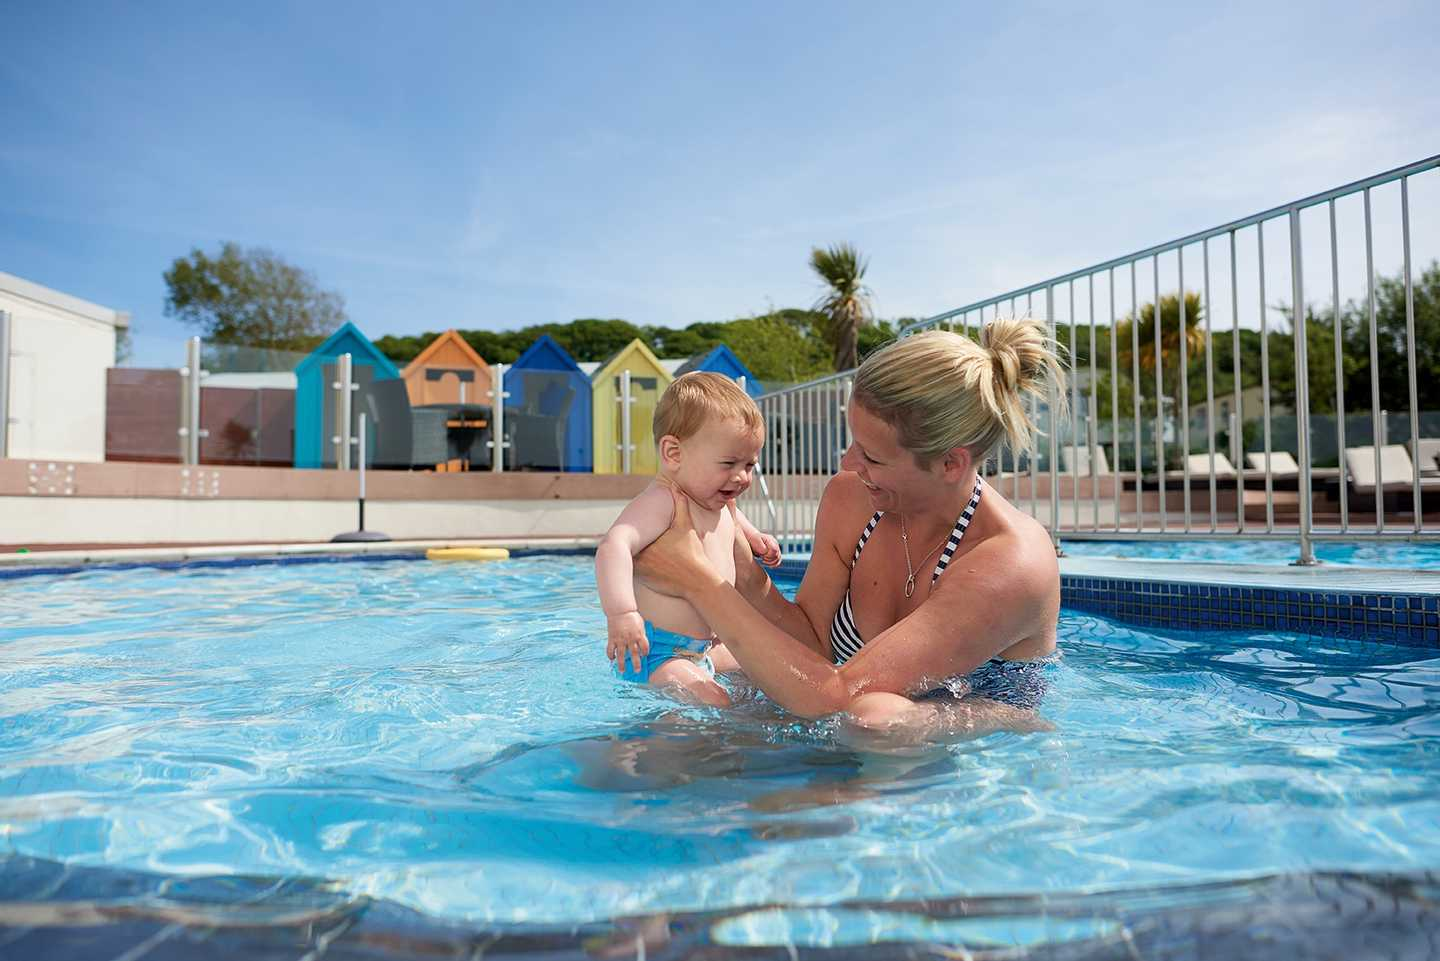 Guests playing in the outdoor pool at Littlesea